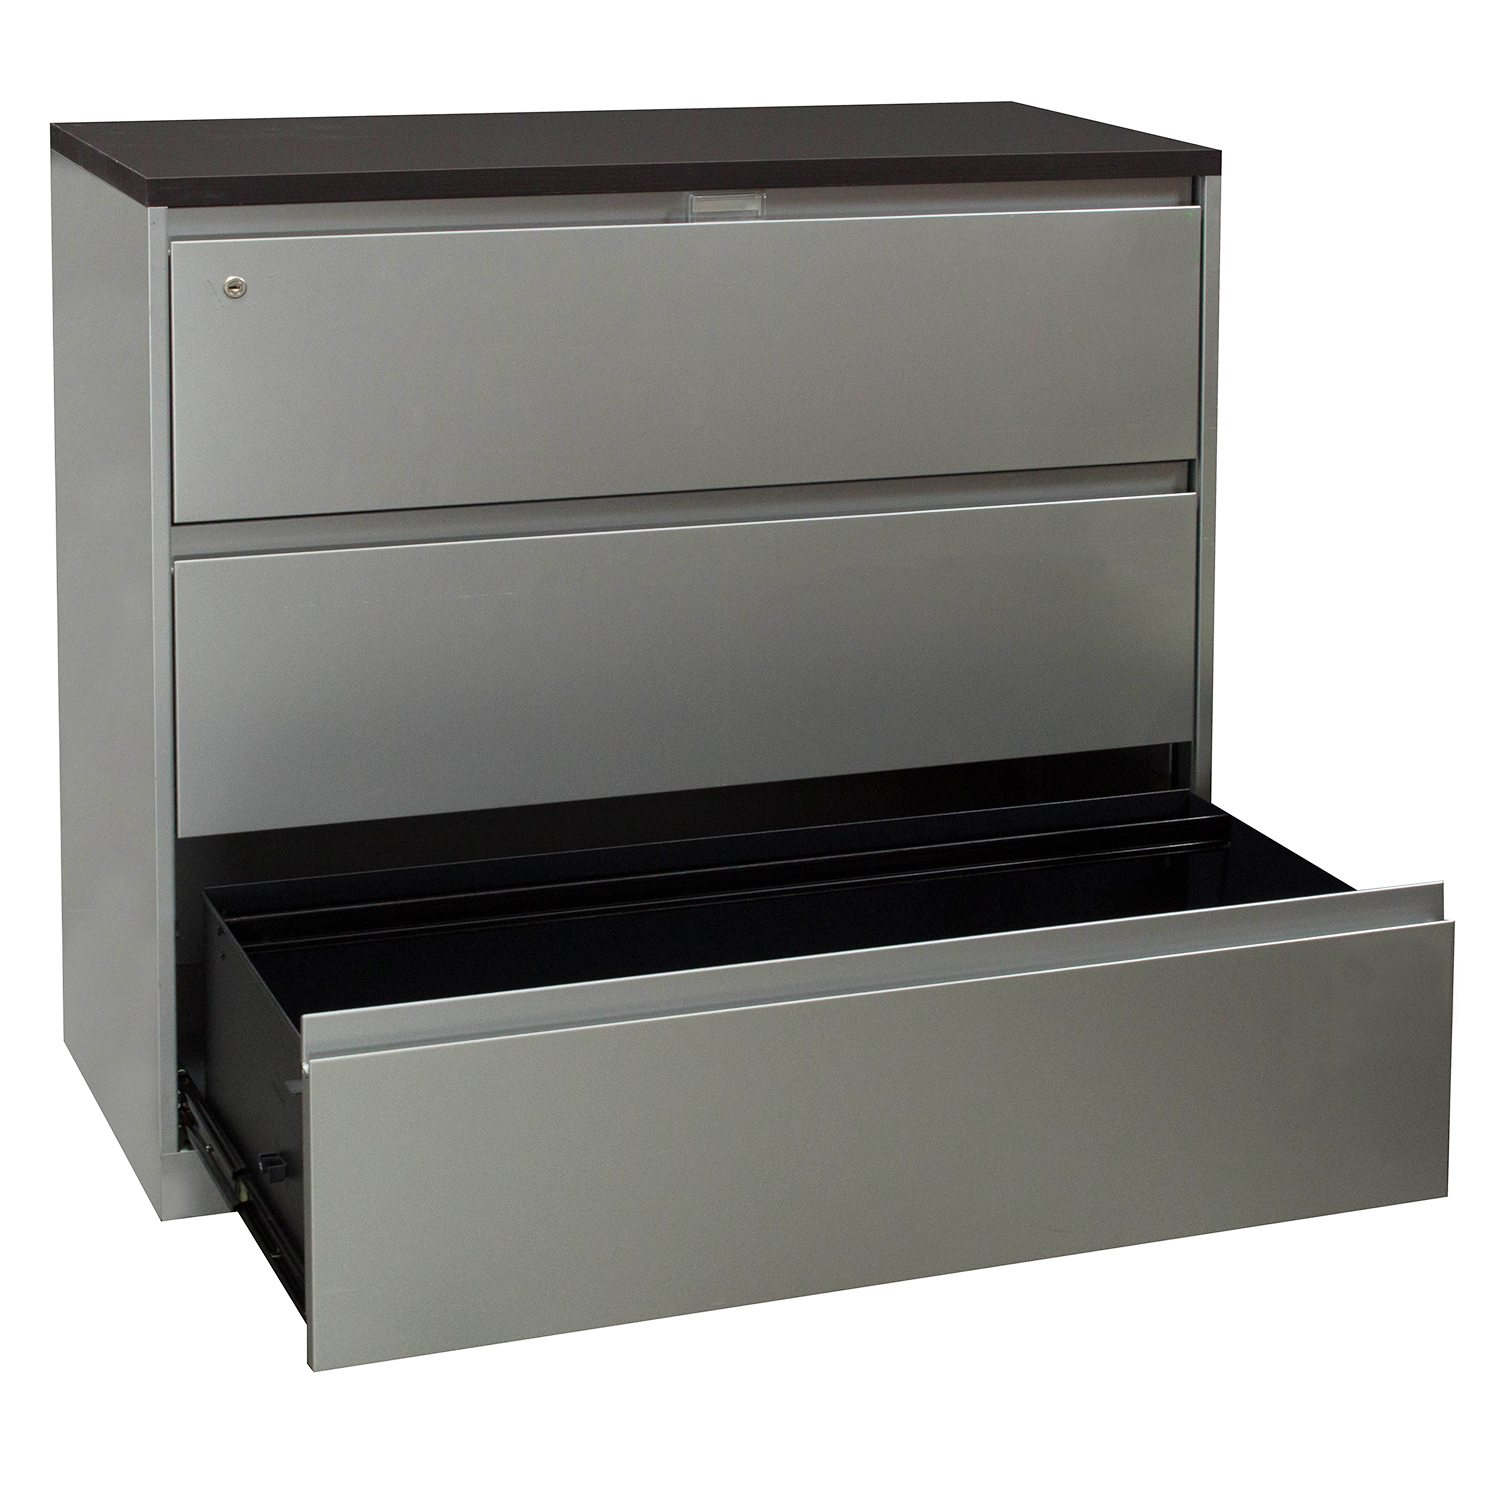 steelcase 900 series used 3 drawer lateral file with espresso laminate top  silver